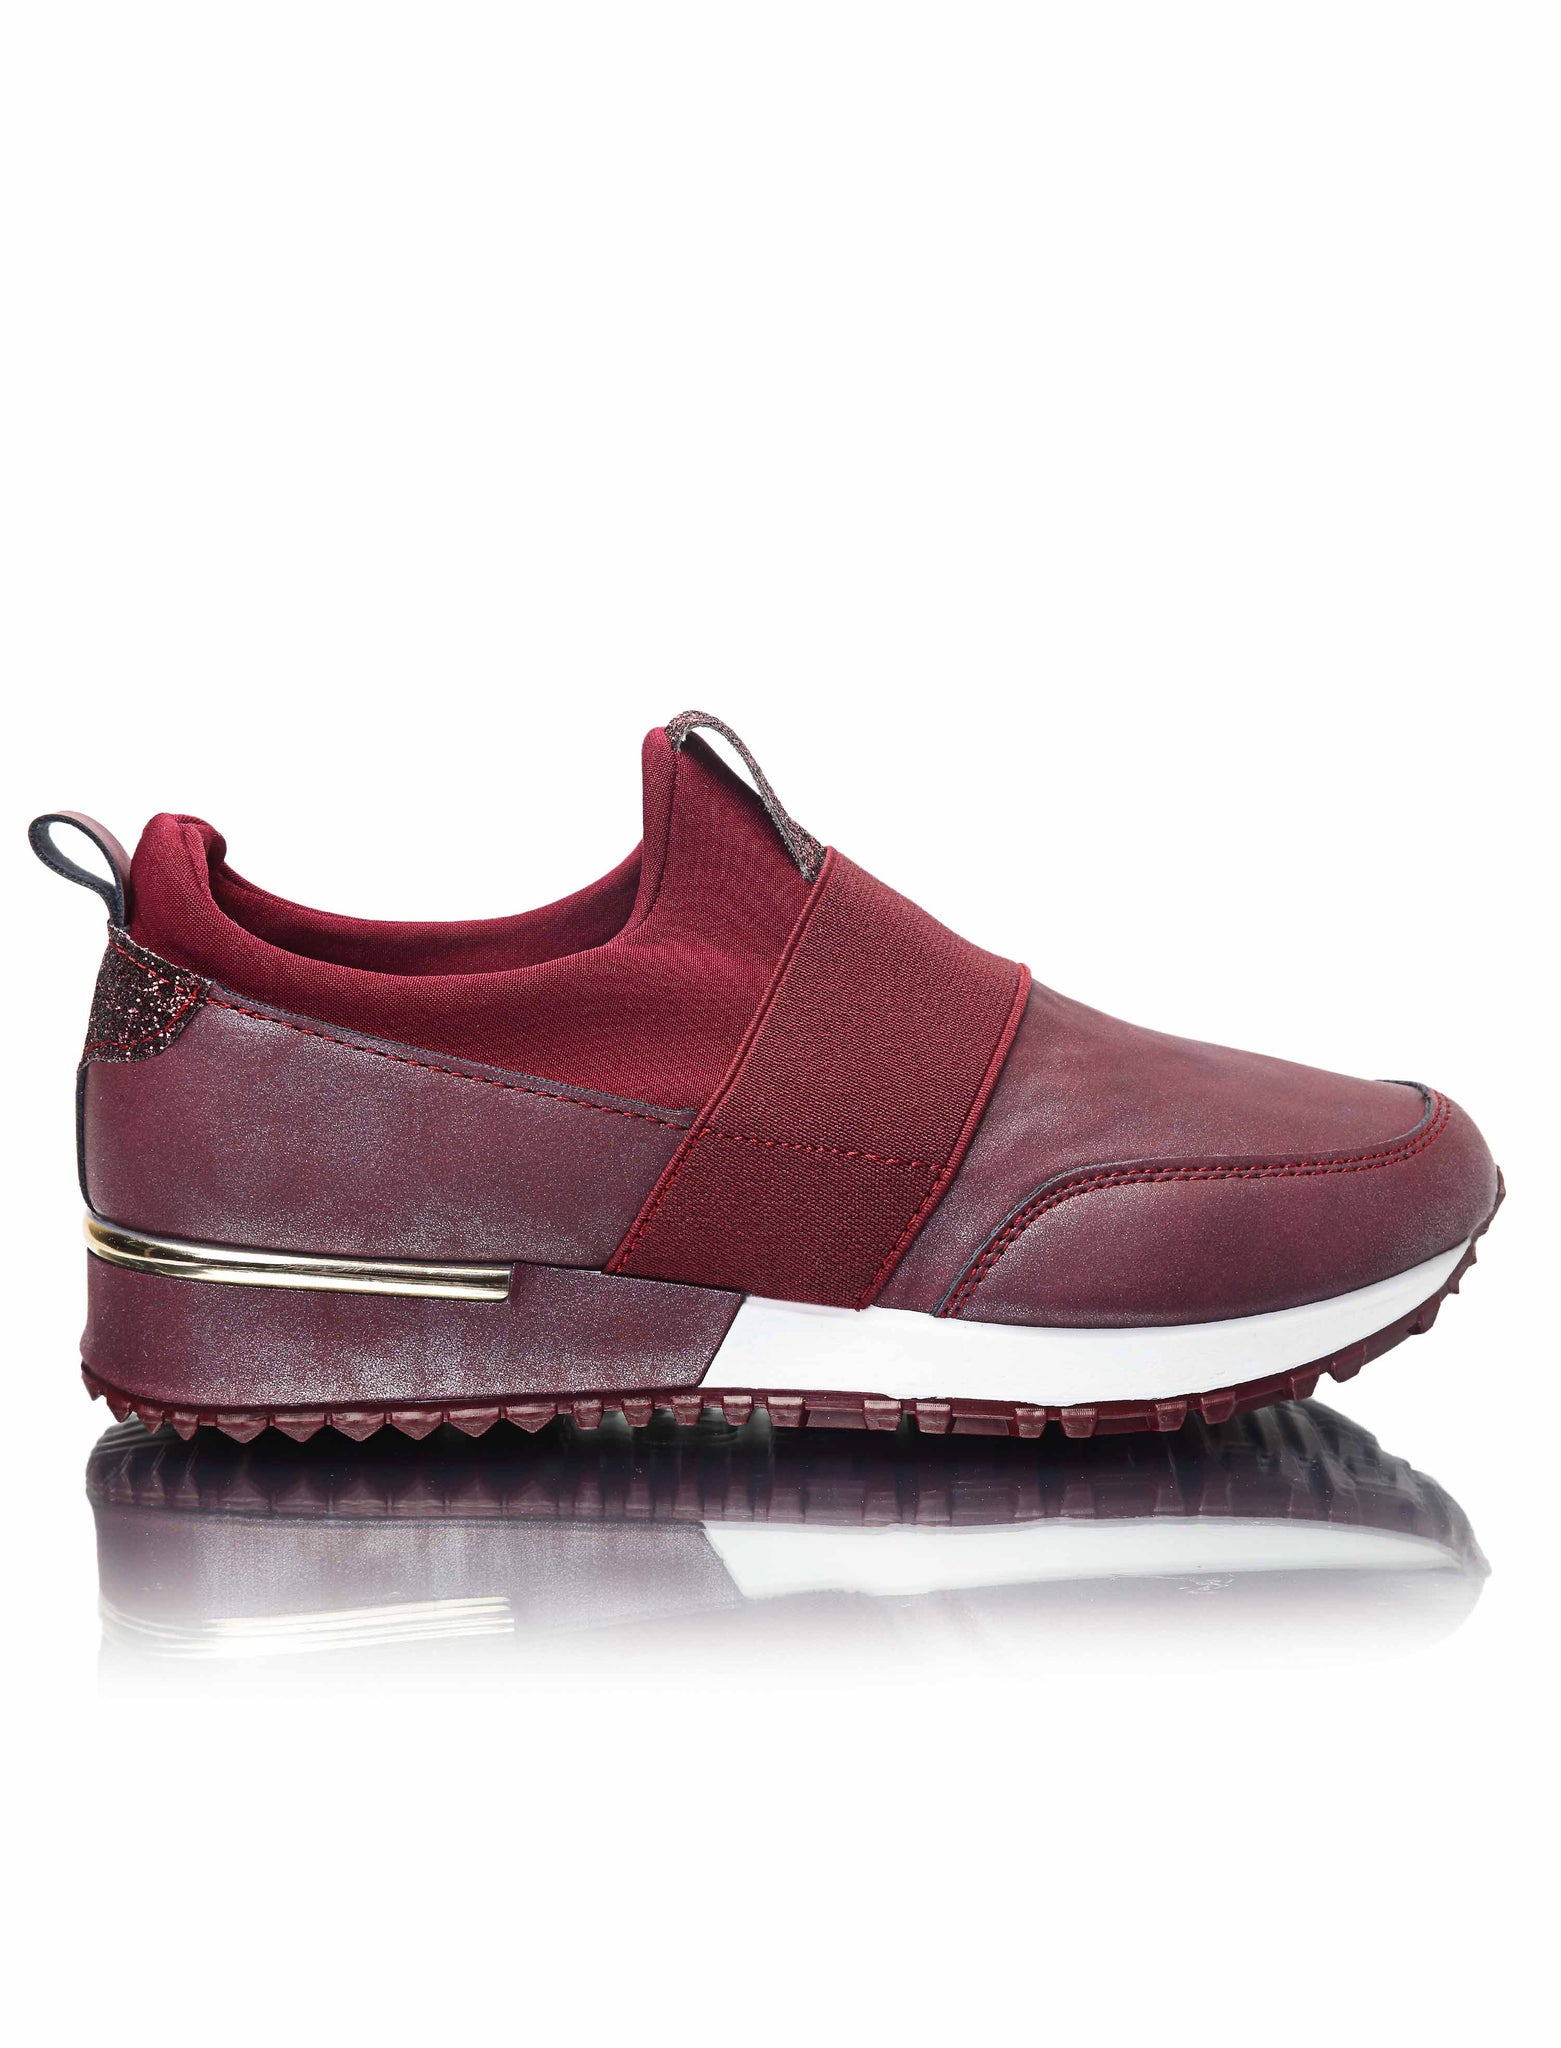 Ladies' Balance Slip On - Burgundy